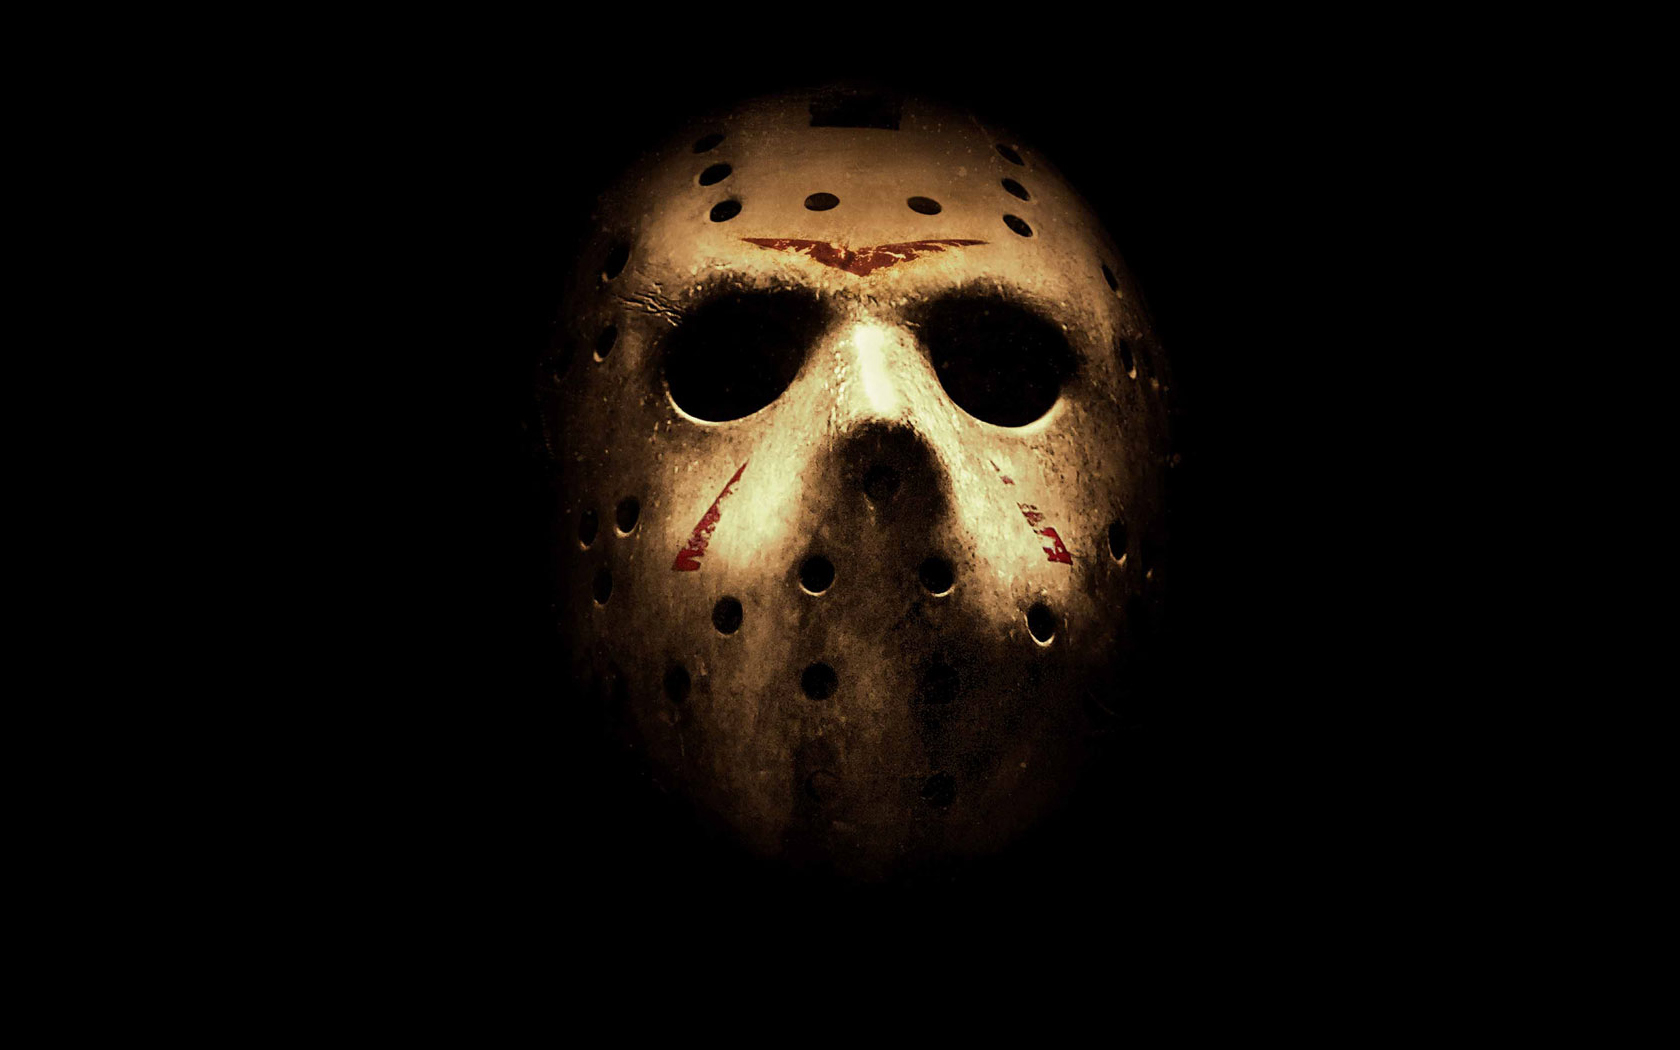 Hd wallpaper horror - Of Horror Movies Wallpapers Face Of Horror Movies Myspace Backgrounds